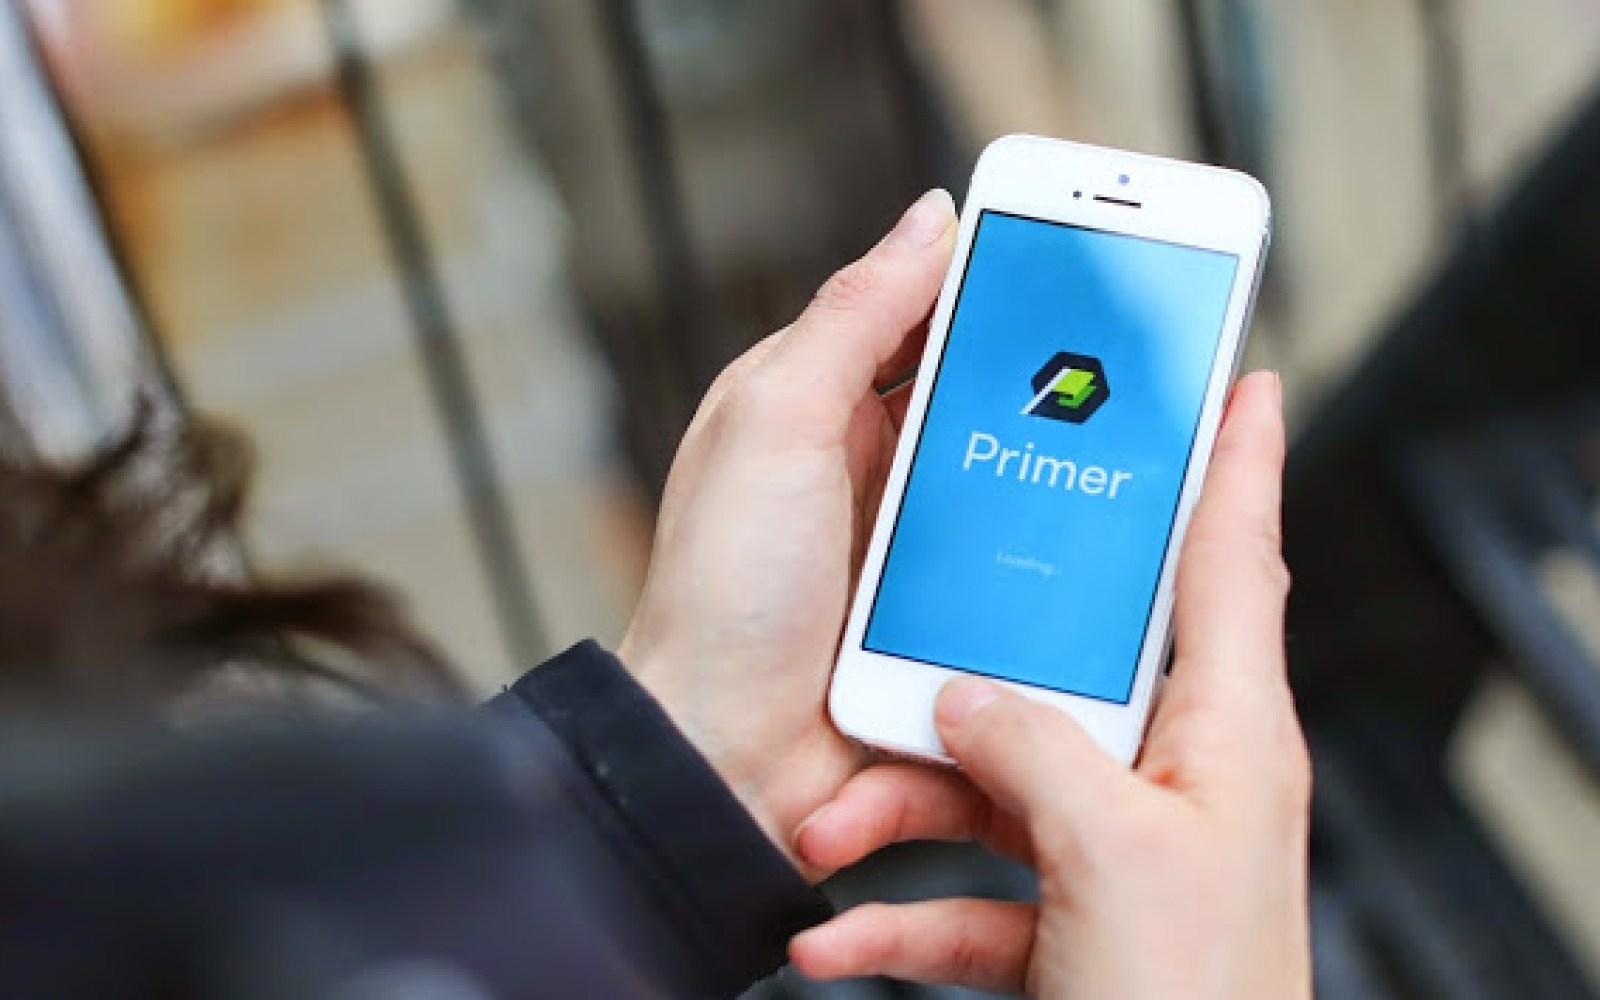 Google launches Primer mobile app to help startups with their marketing needs